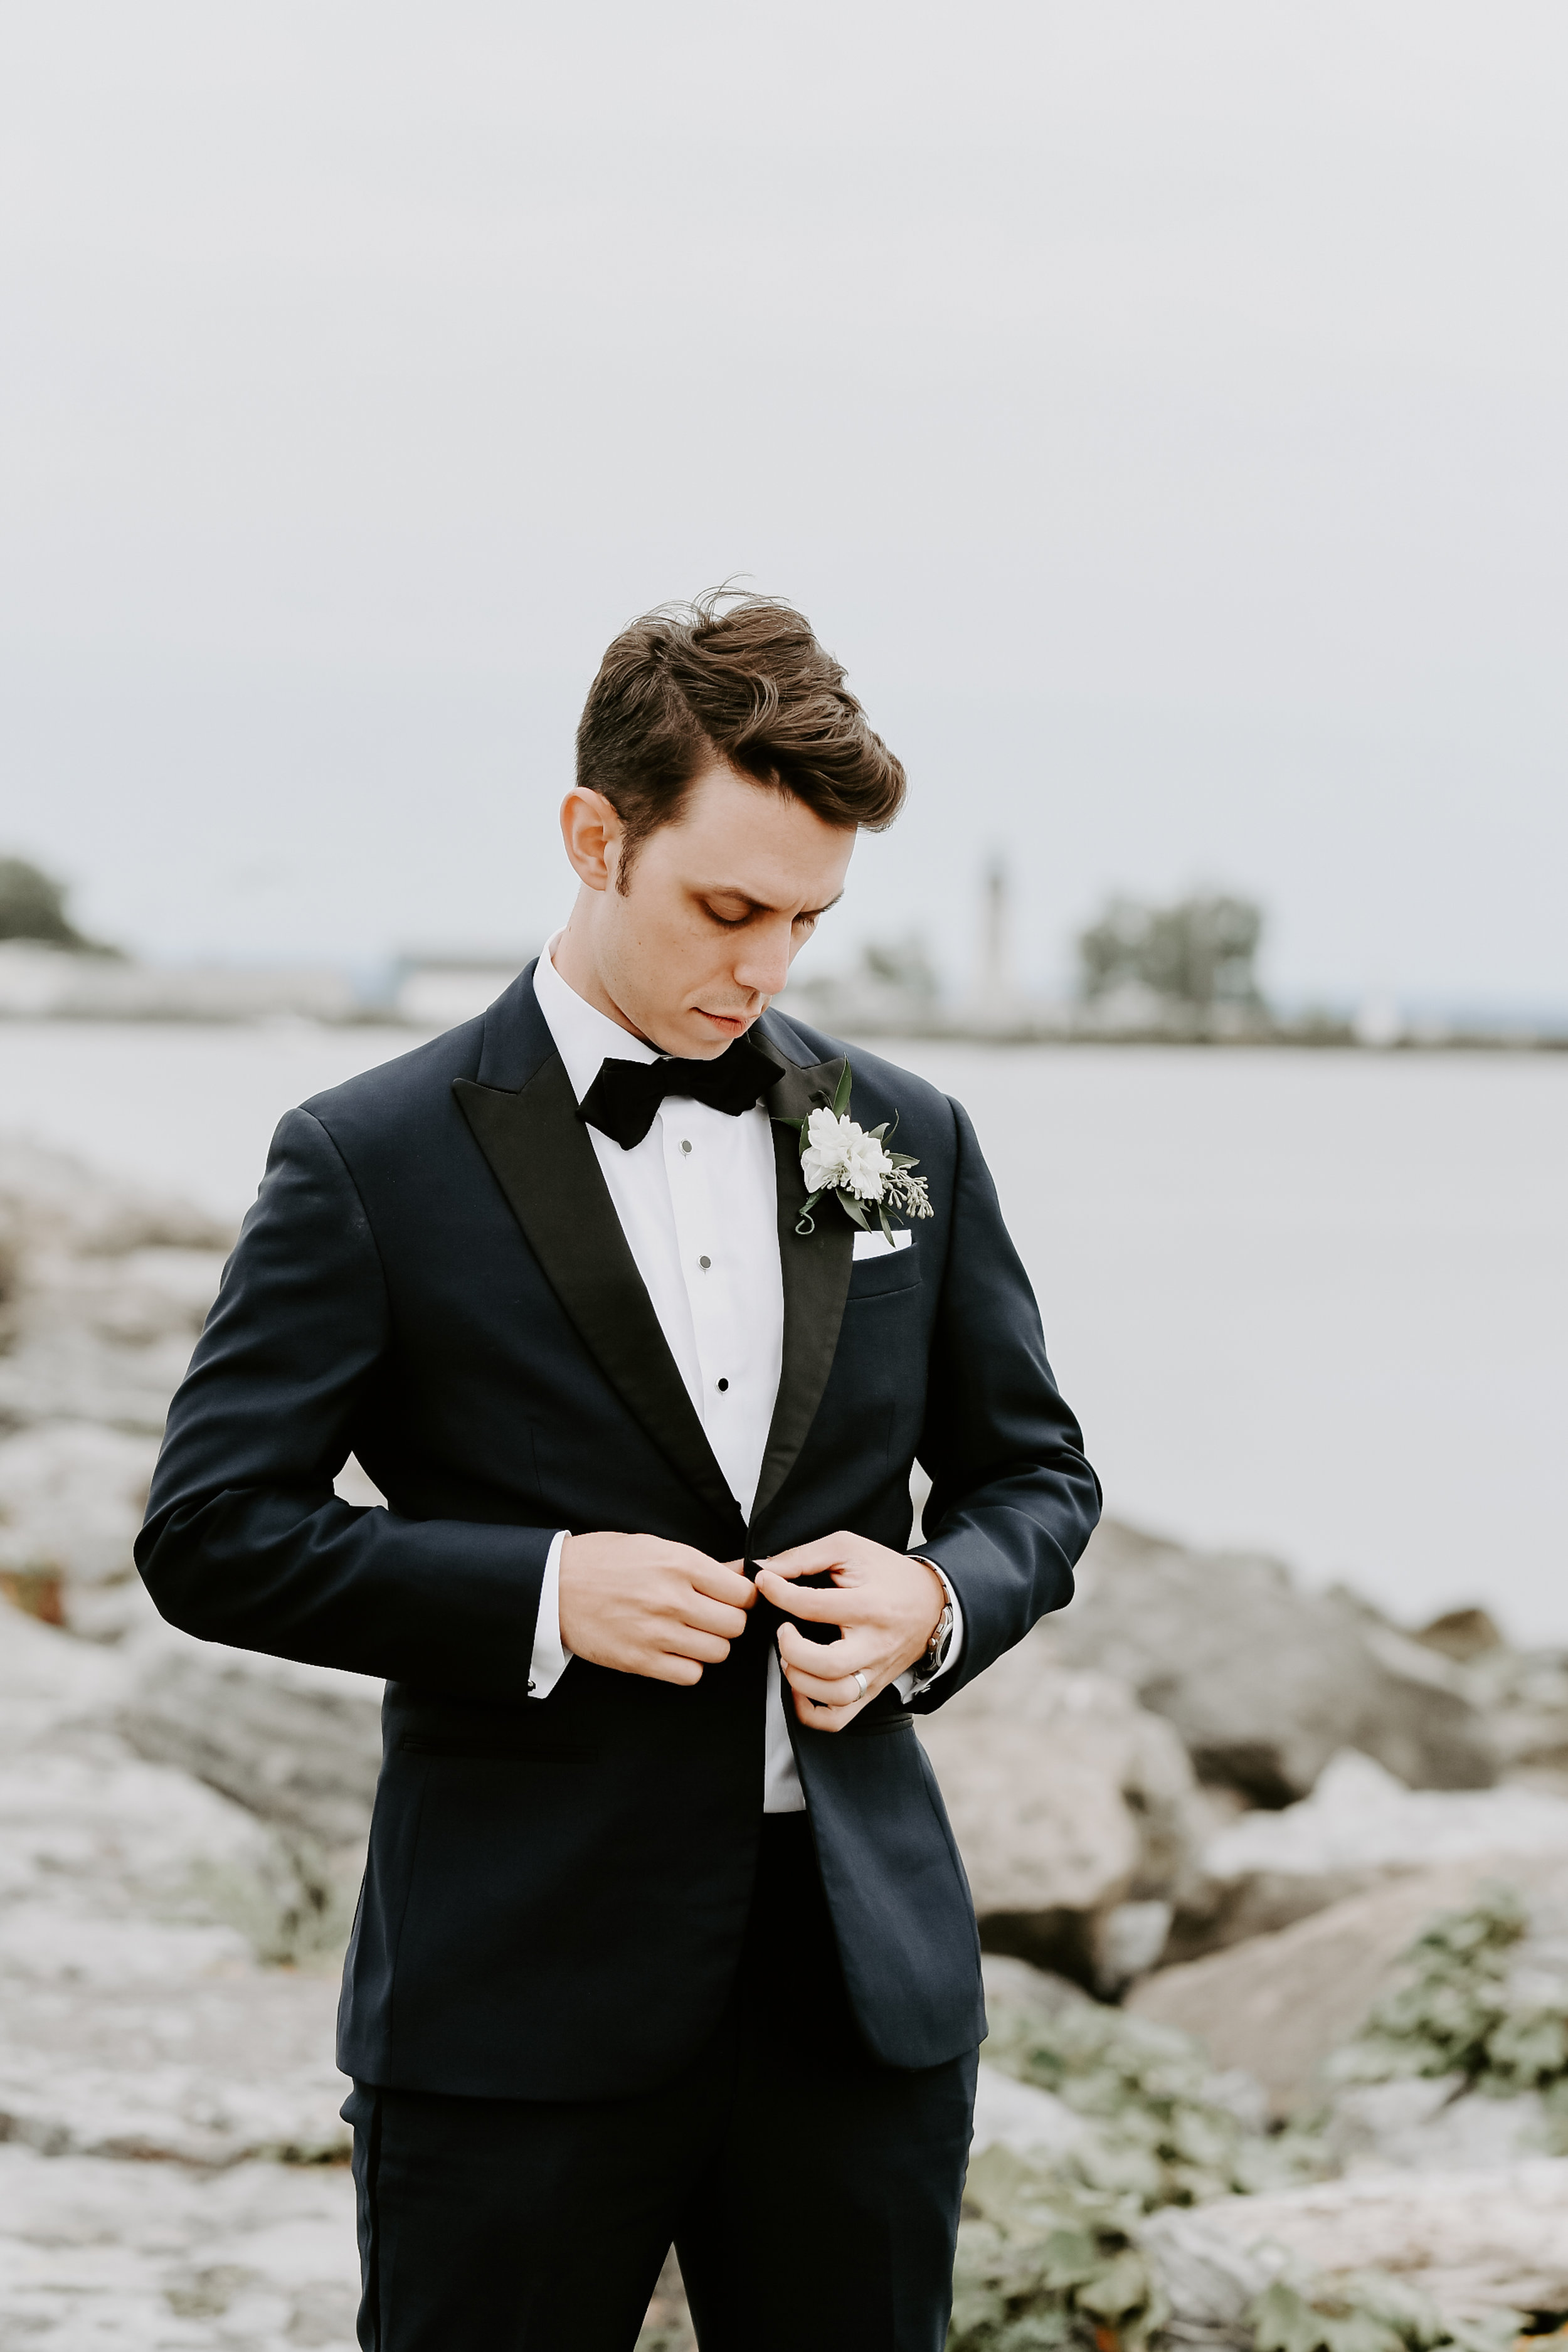 Groom poses modern tuxedo for wedding photos at Buffalo, NY wedding planned by Exhale Events. Find more wedding inspiration at exhale-events.com!